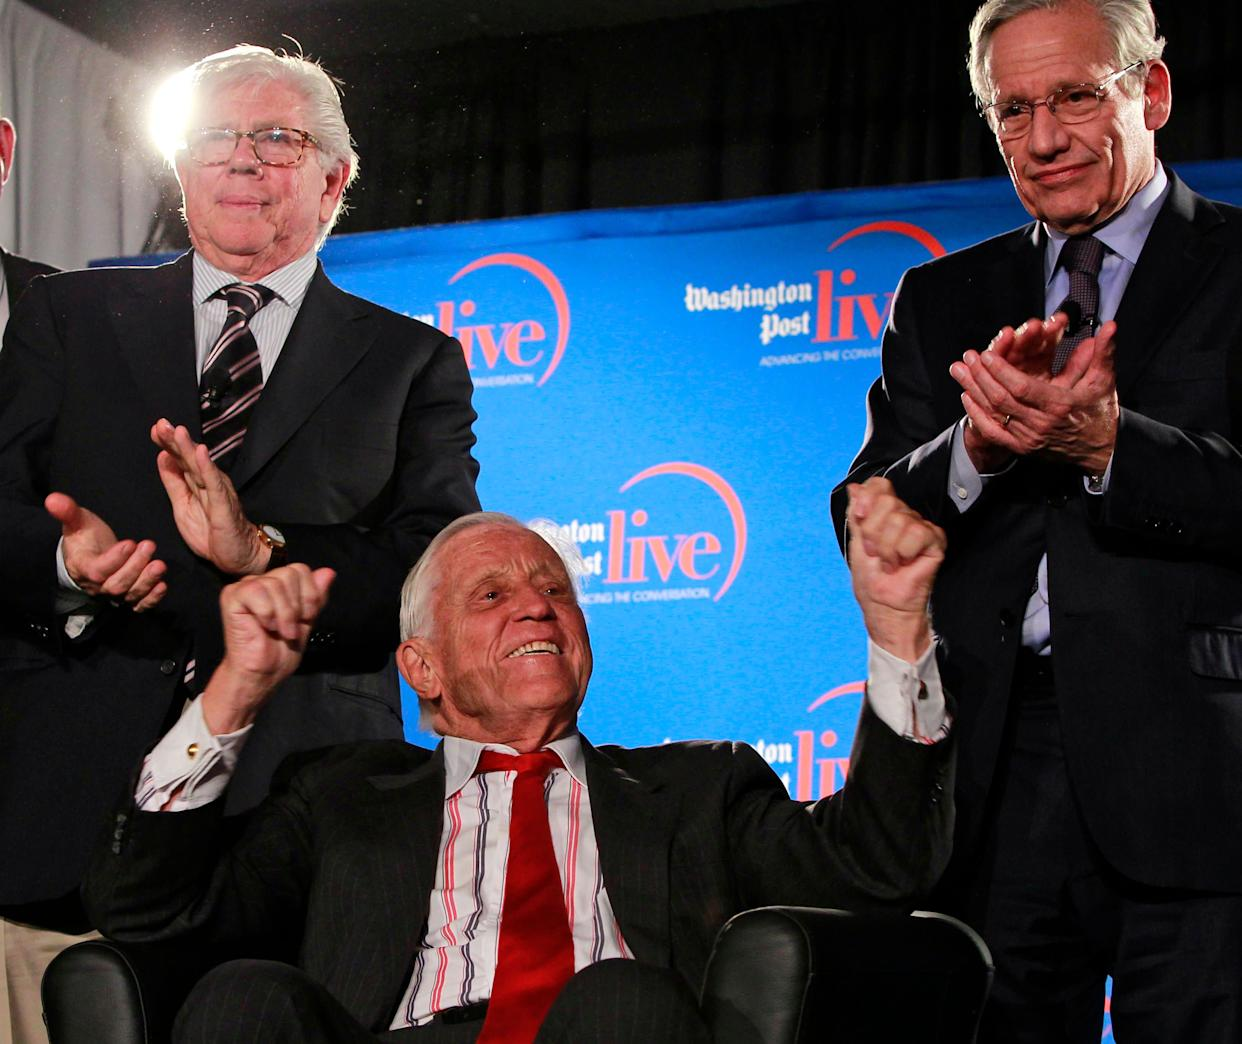 Former Washington Post reporters Carl Bernstein, left, and Bob Woodward, right, applaud as former executive editor Ben Bradlee sits on stage during an event sponsored by The Washington Post to commemorate the 40th anniversary of Watergate Monday, June 11, 2012 at the Watergate office building in Washington. (AP Photo/Alex Brandon)